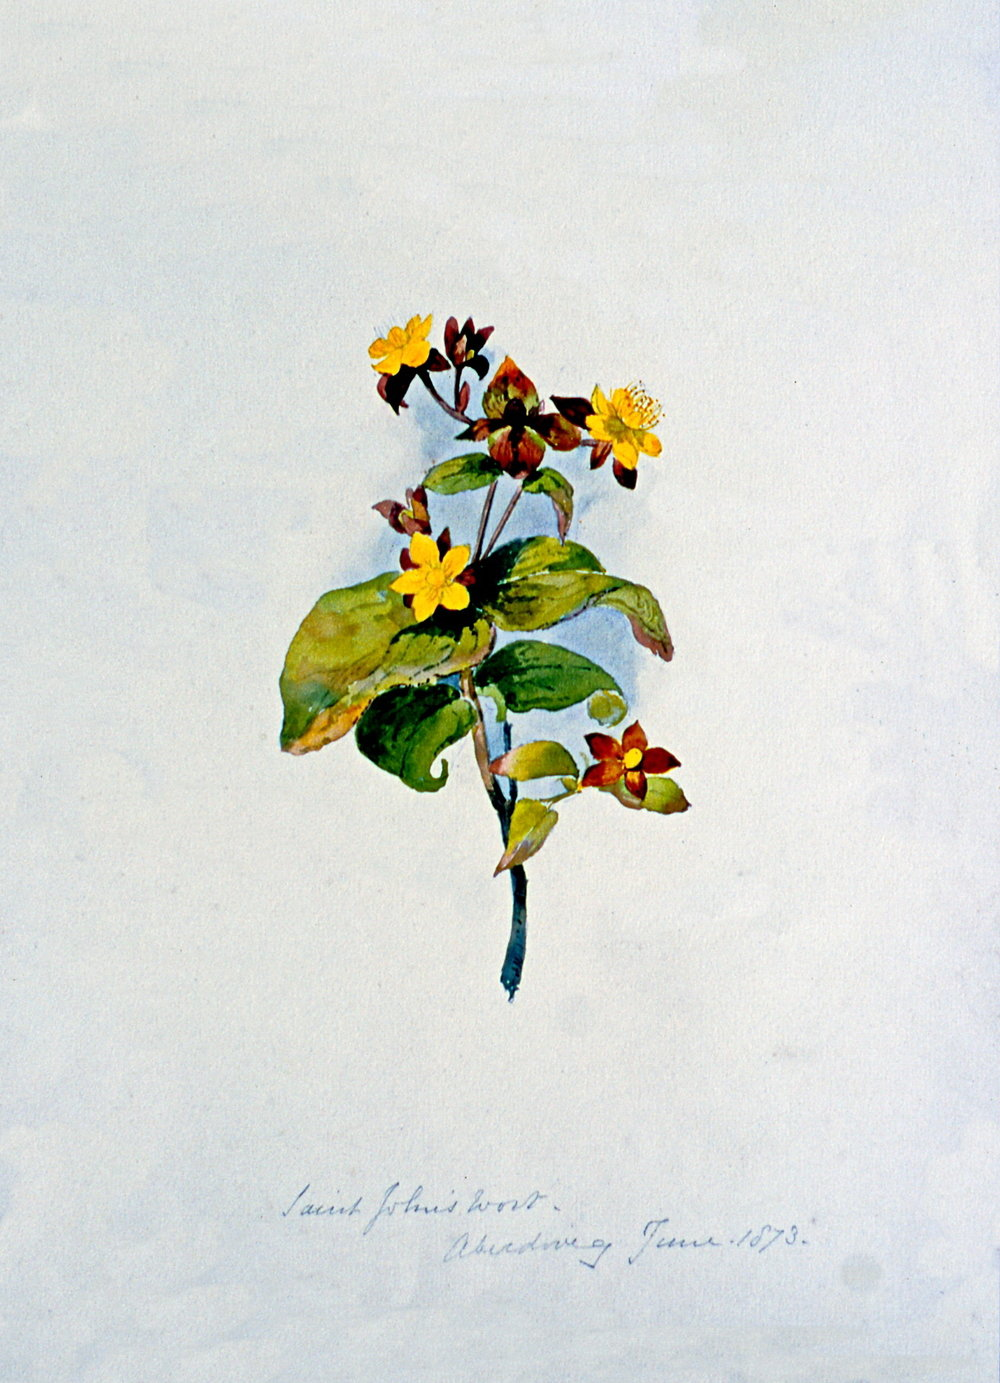 St. Johns Wort - Aberdovy June 1873 , June 1873, Julia Bullock Webster, watercolour on paper, 35.2 cm x 25.6 cm, 2003.02.24, gift of The Grist Mill at Keremeos